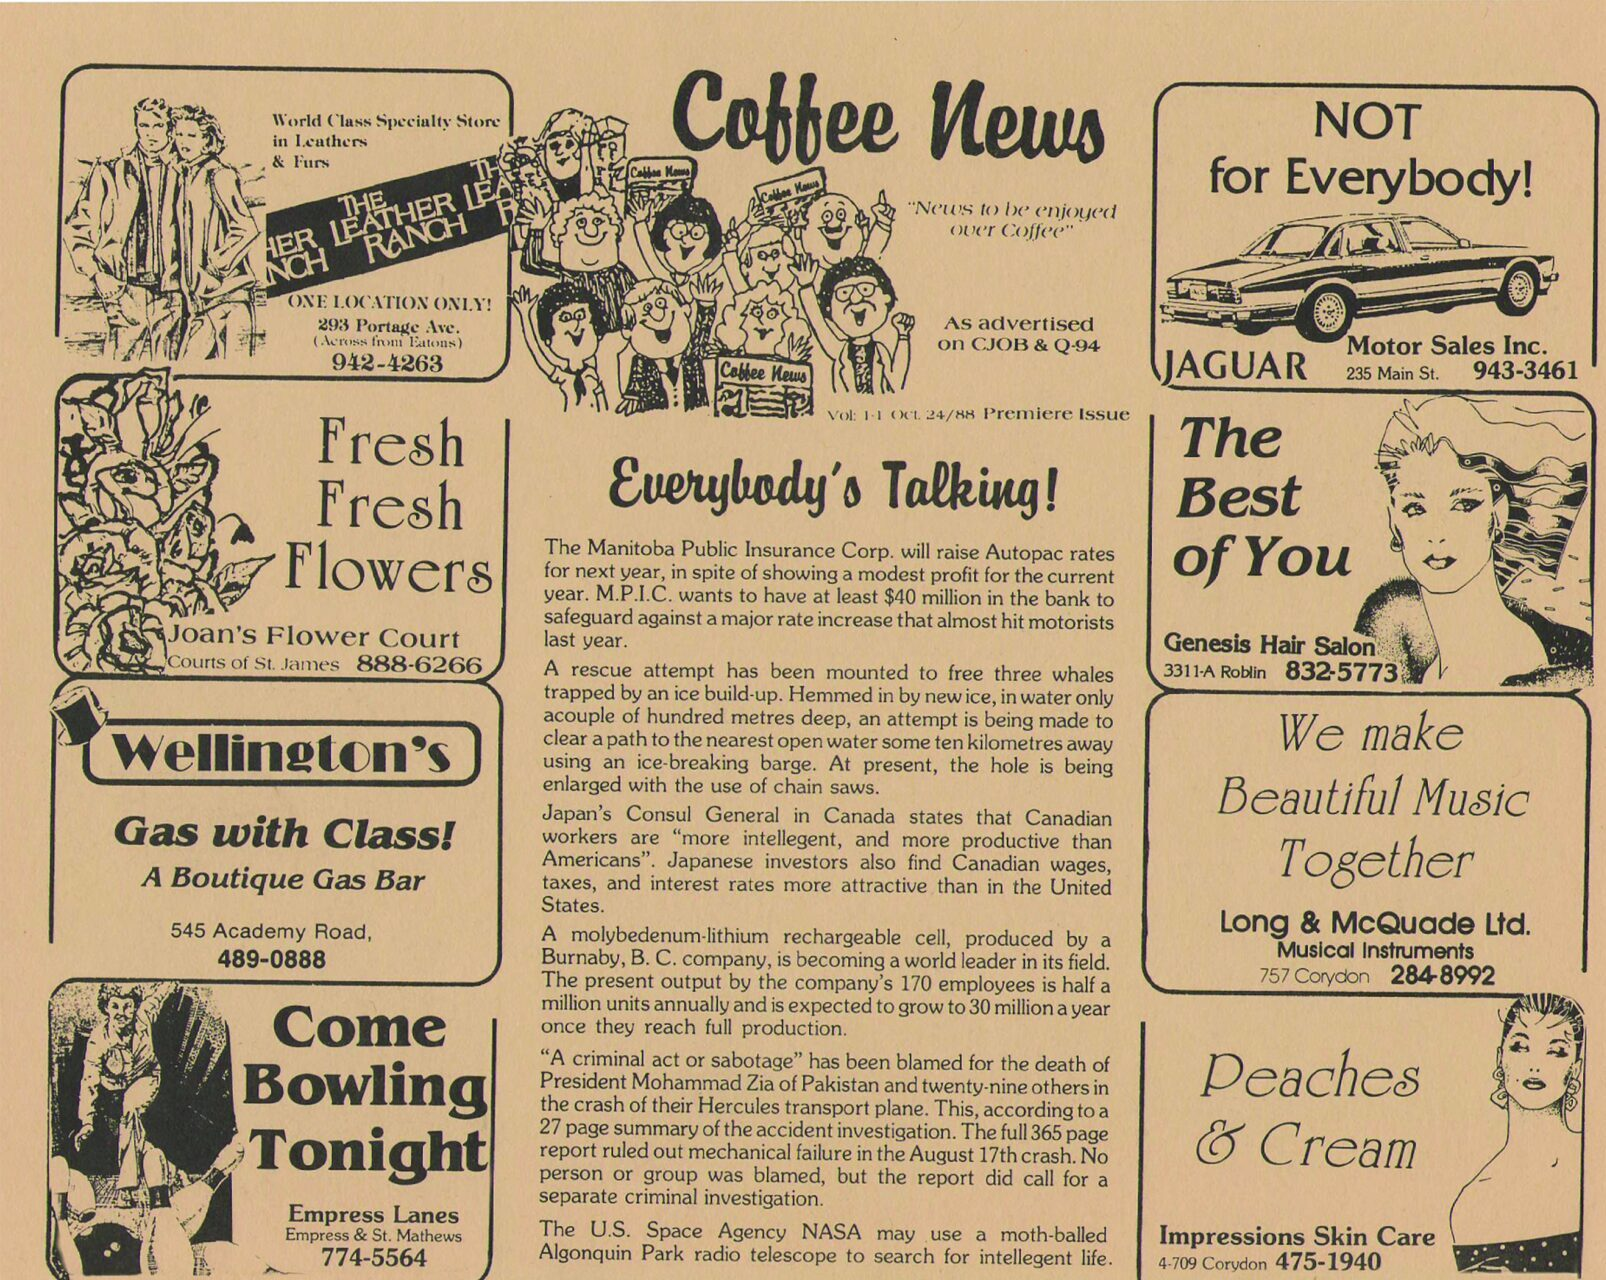 Copy of the publication Coffee News